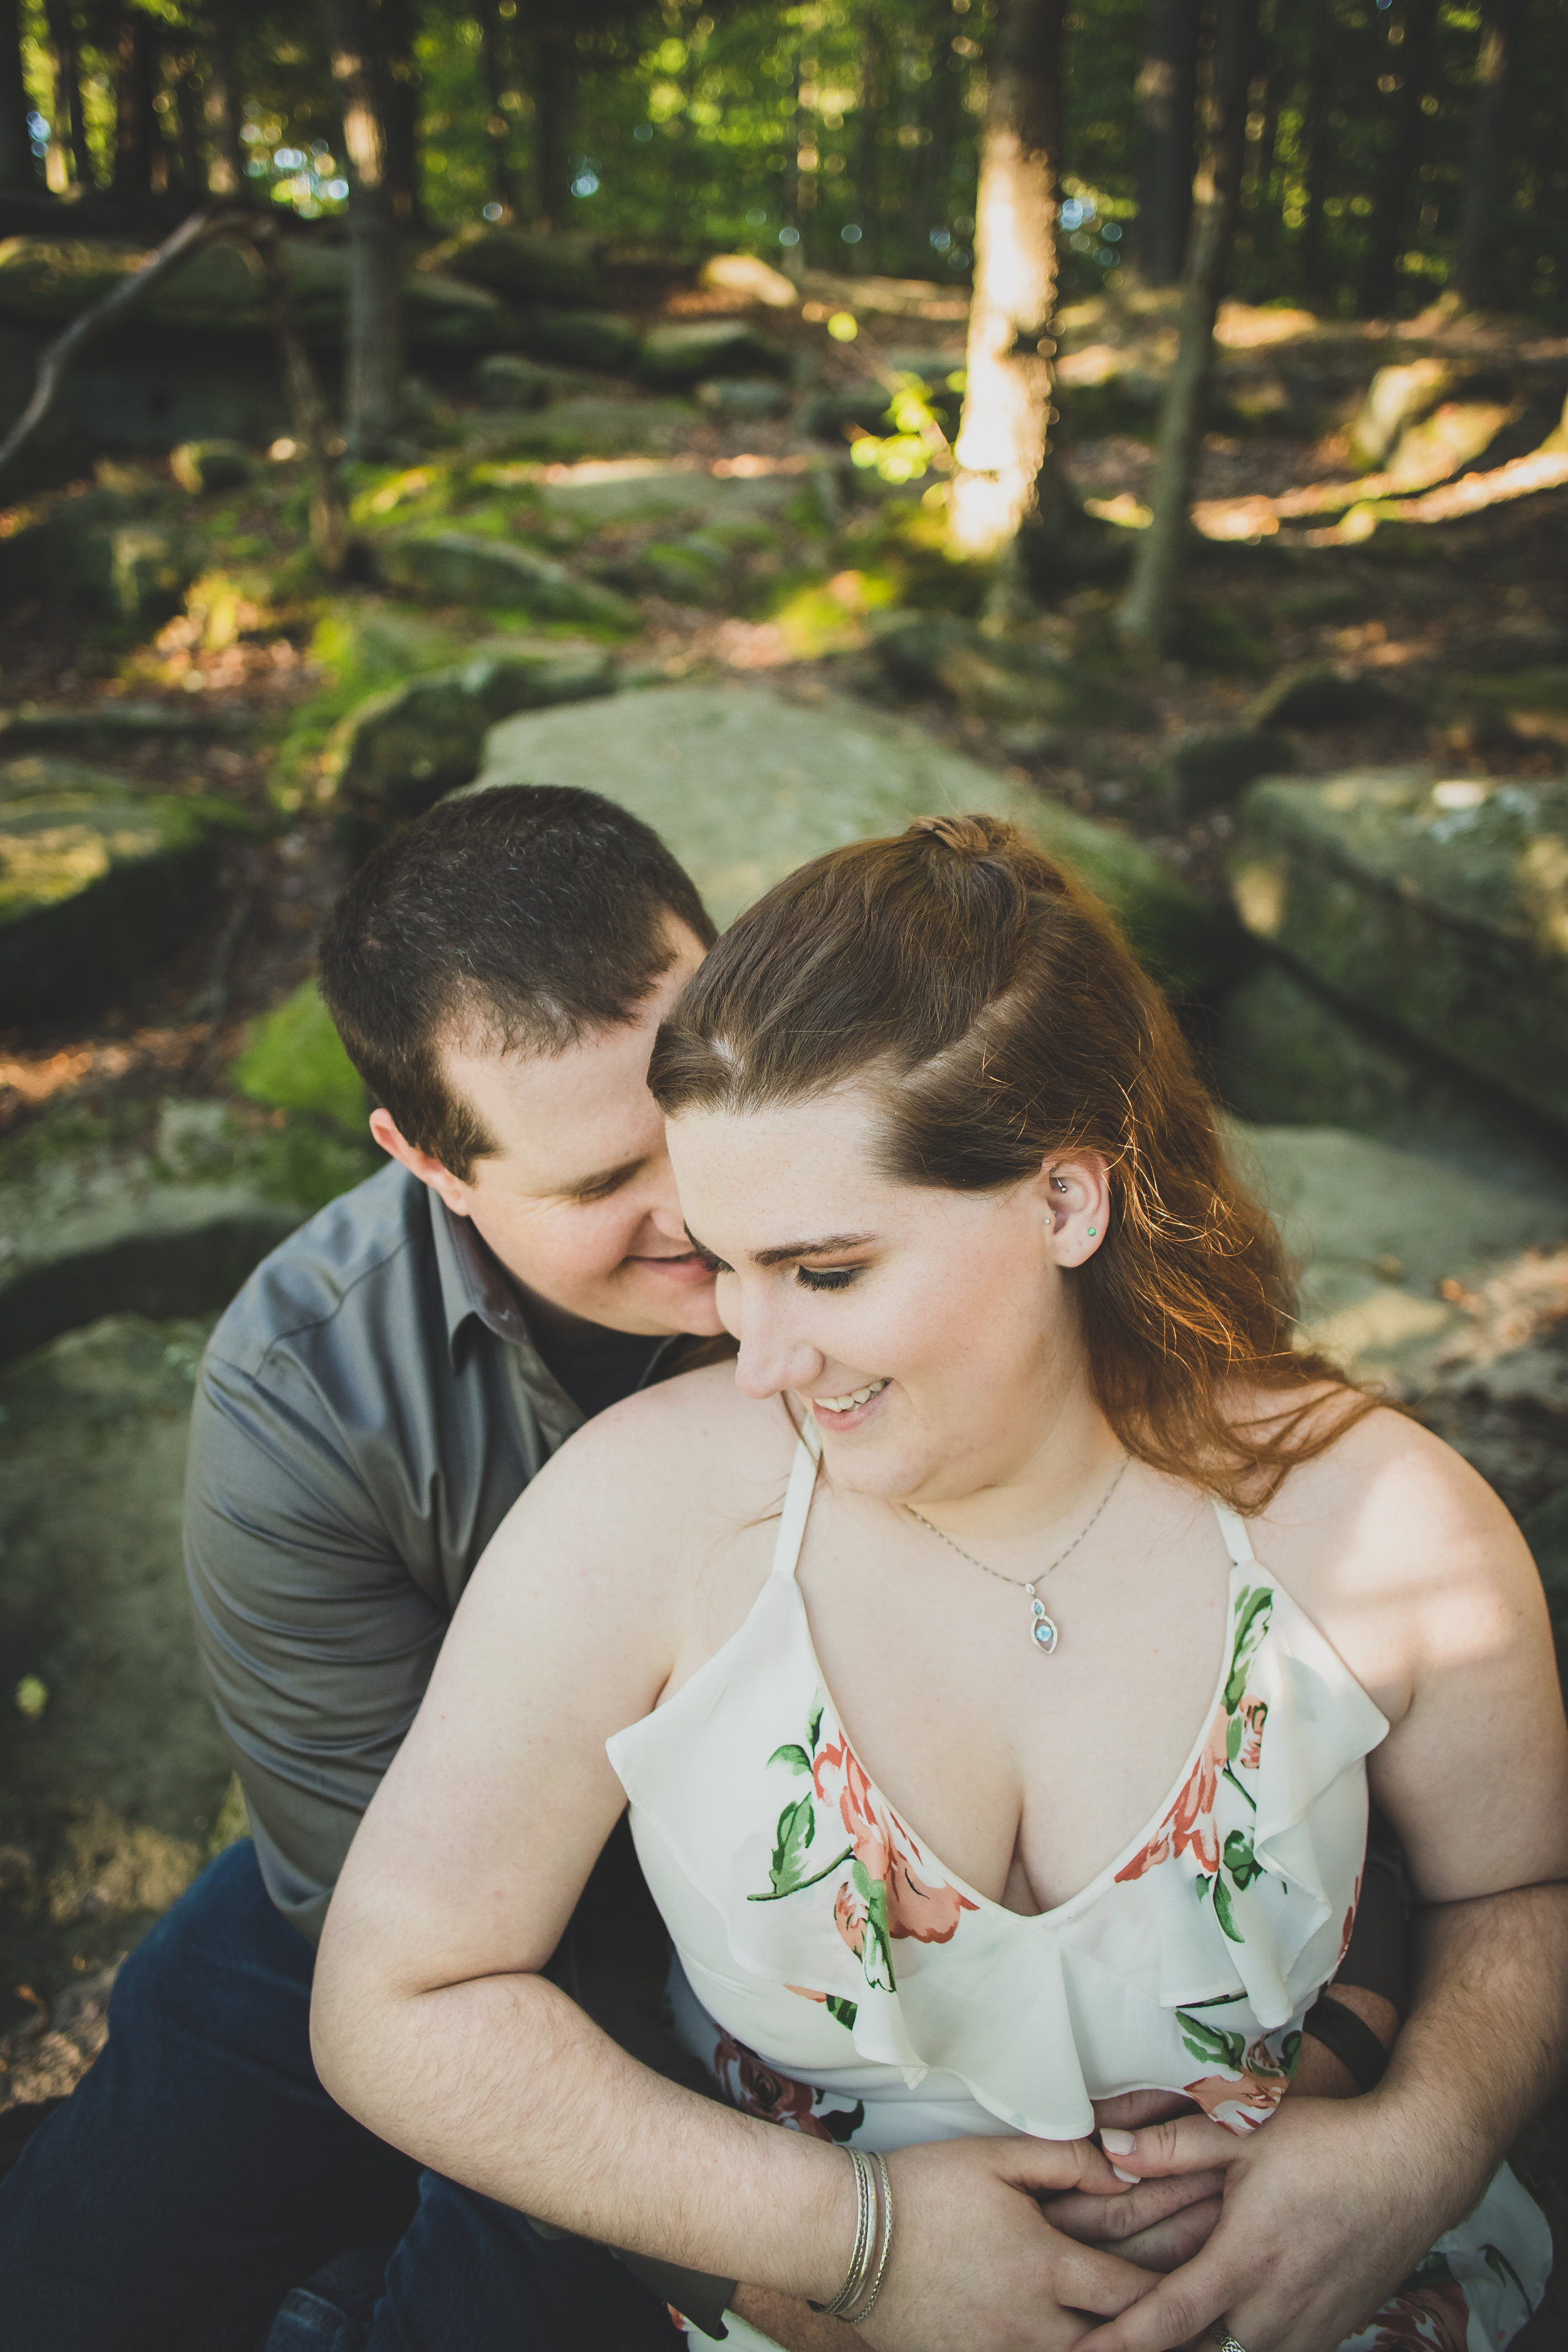 Michelle Carter Photography Engagement Session Cuyahoga Valley National Park-1.jpg